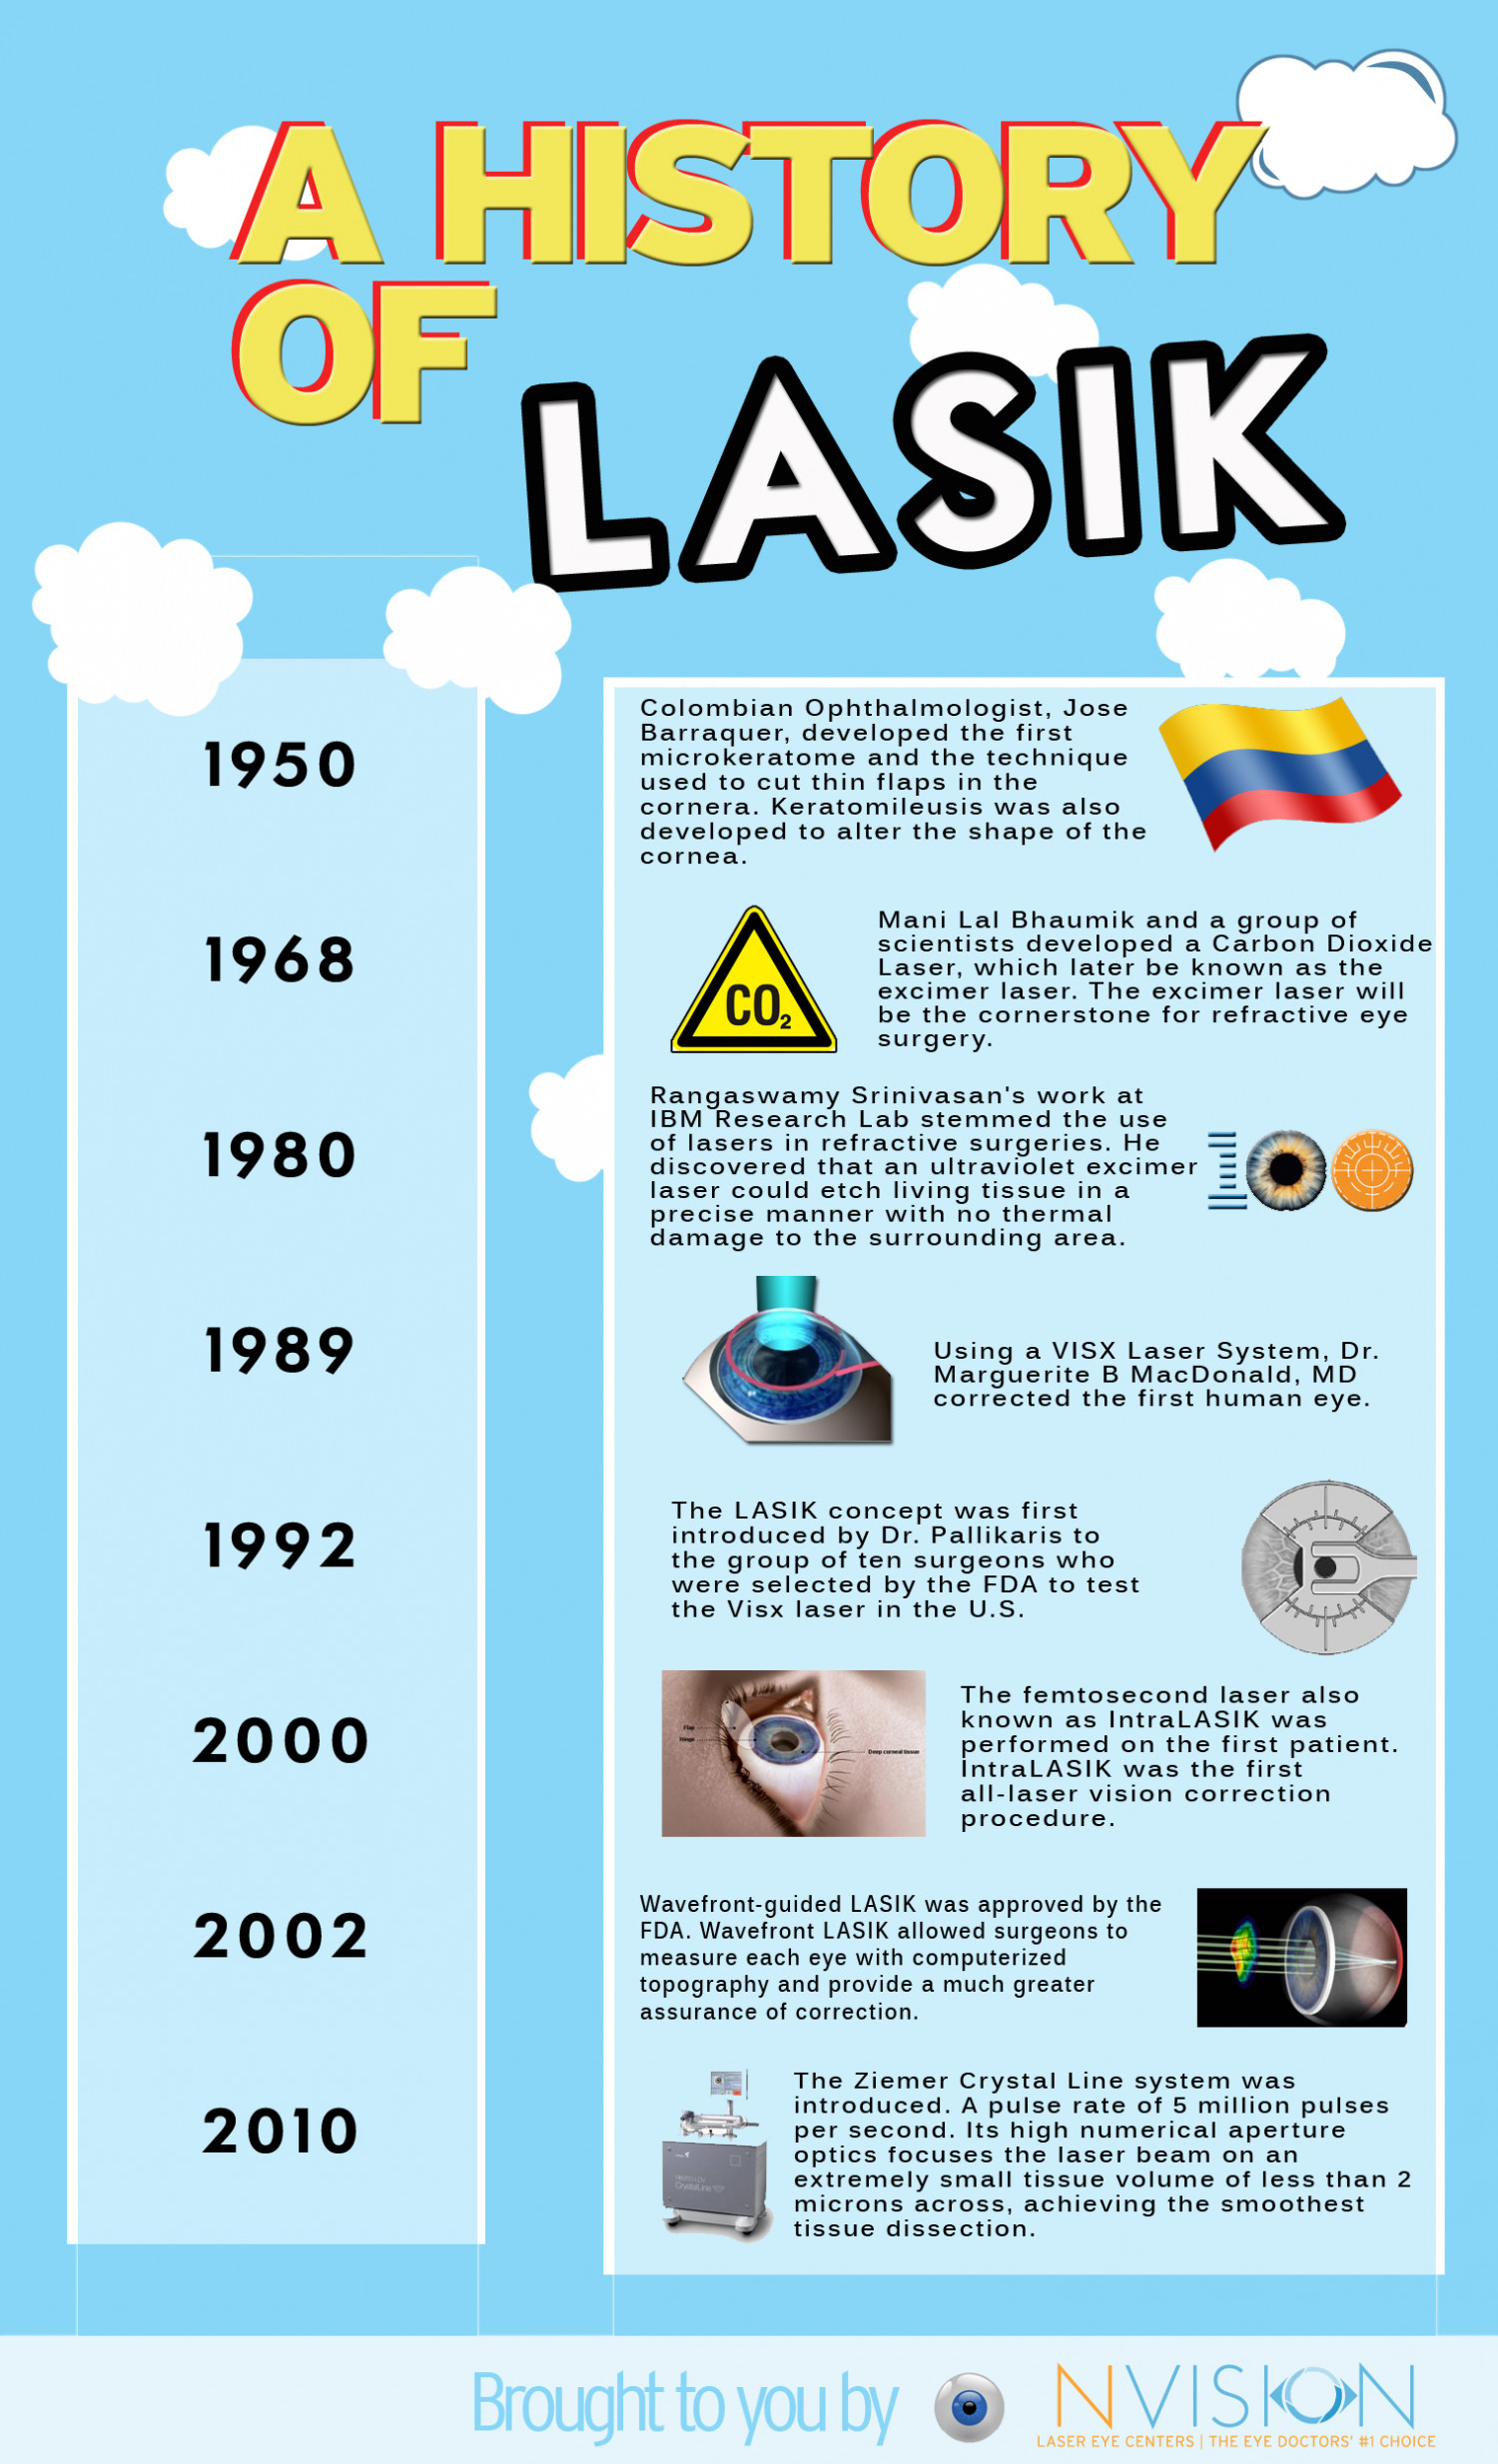 A History of LASIK Infographic